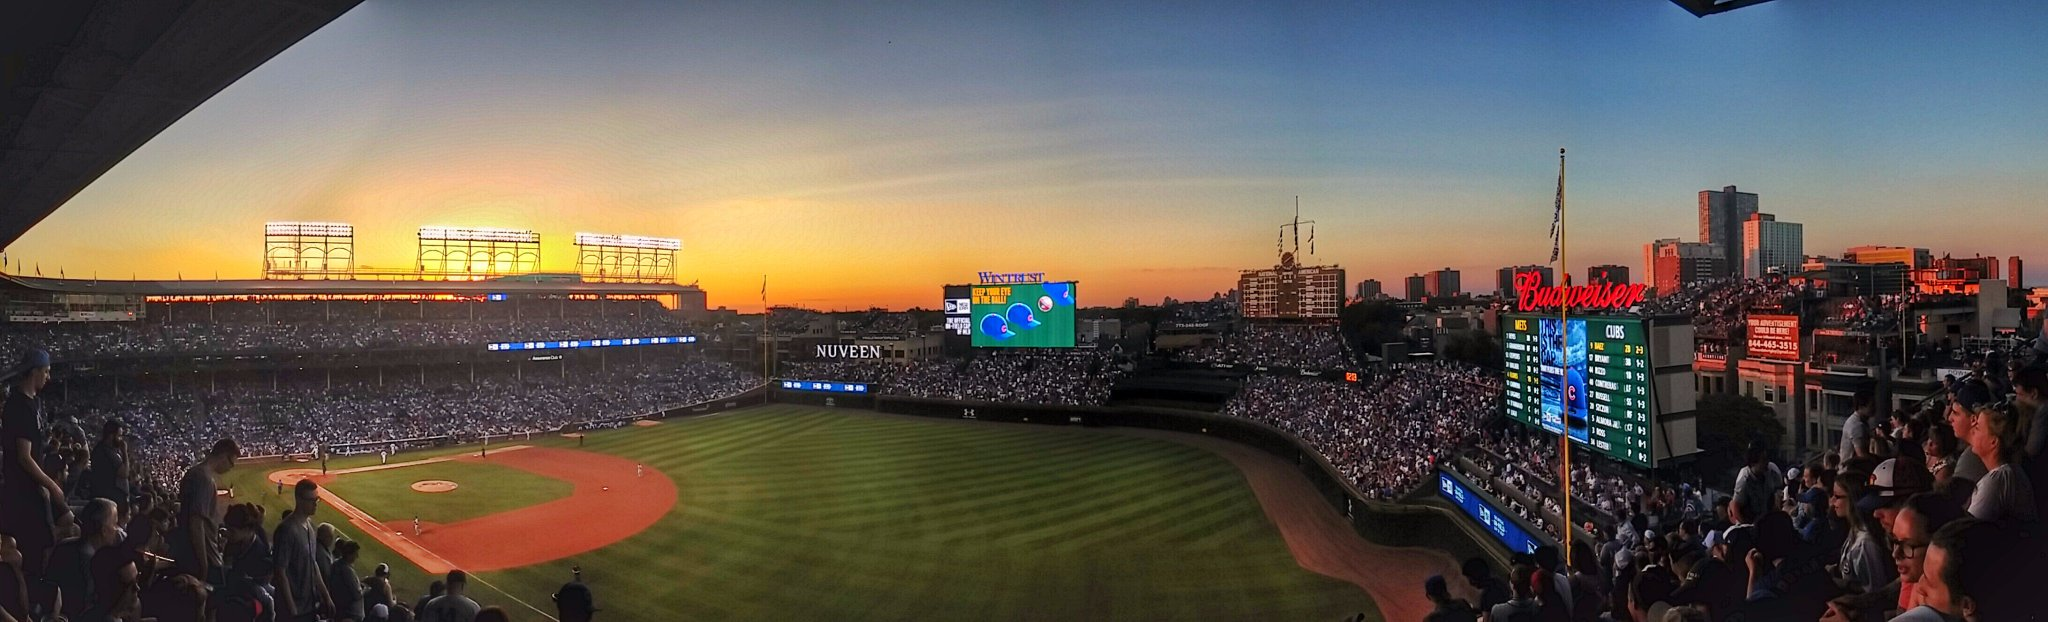 Can't beat summer nights in Chicago. https://t.co/DZ3Wbn3a8f